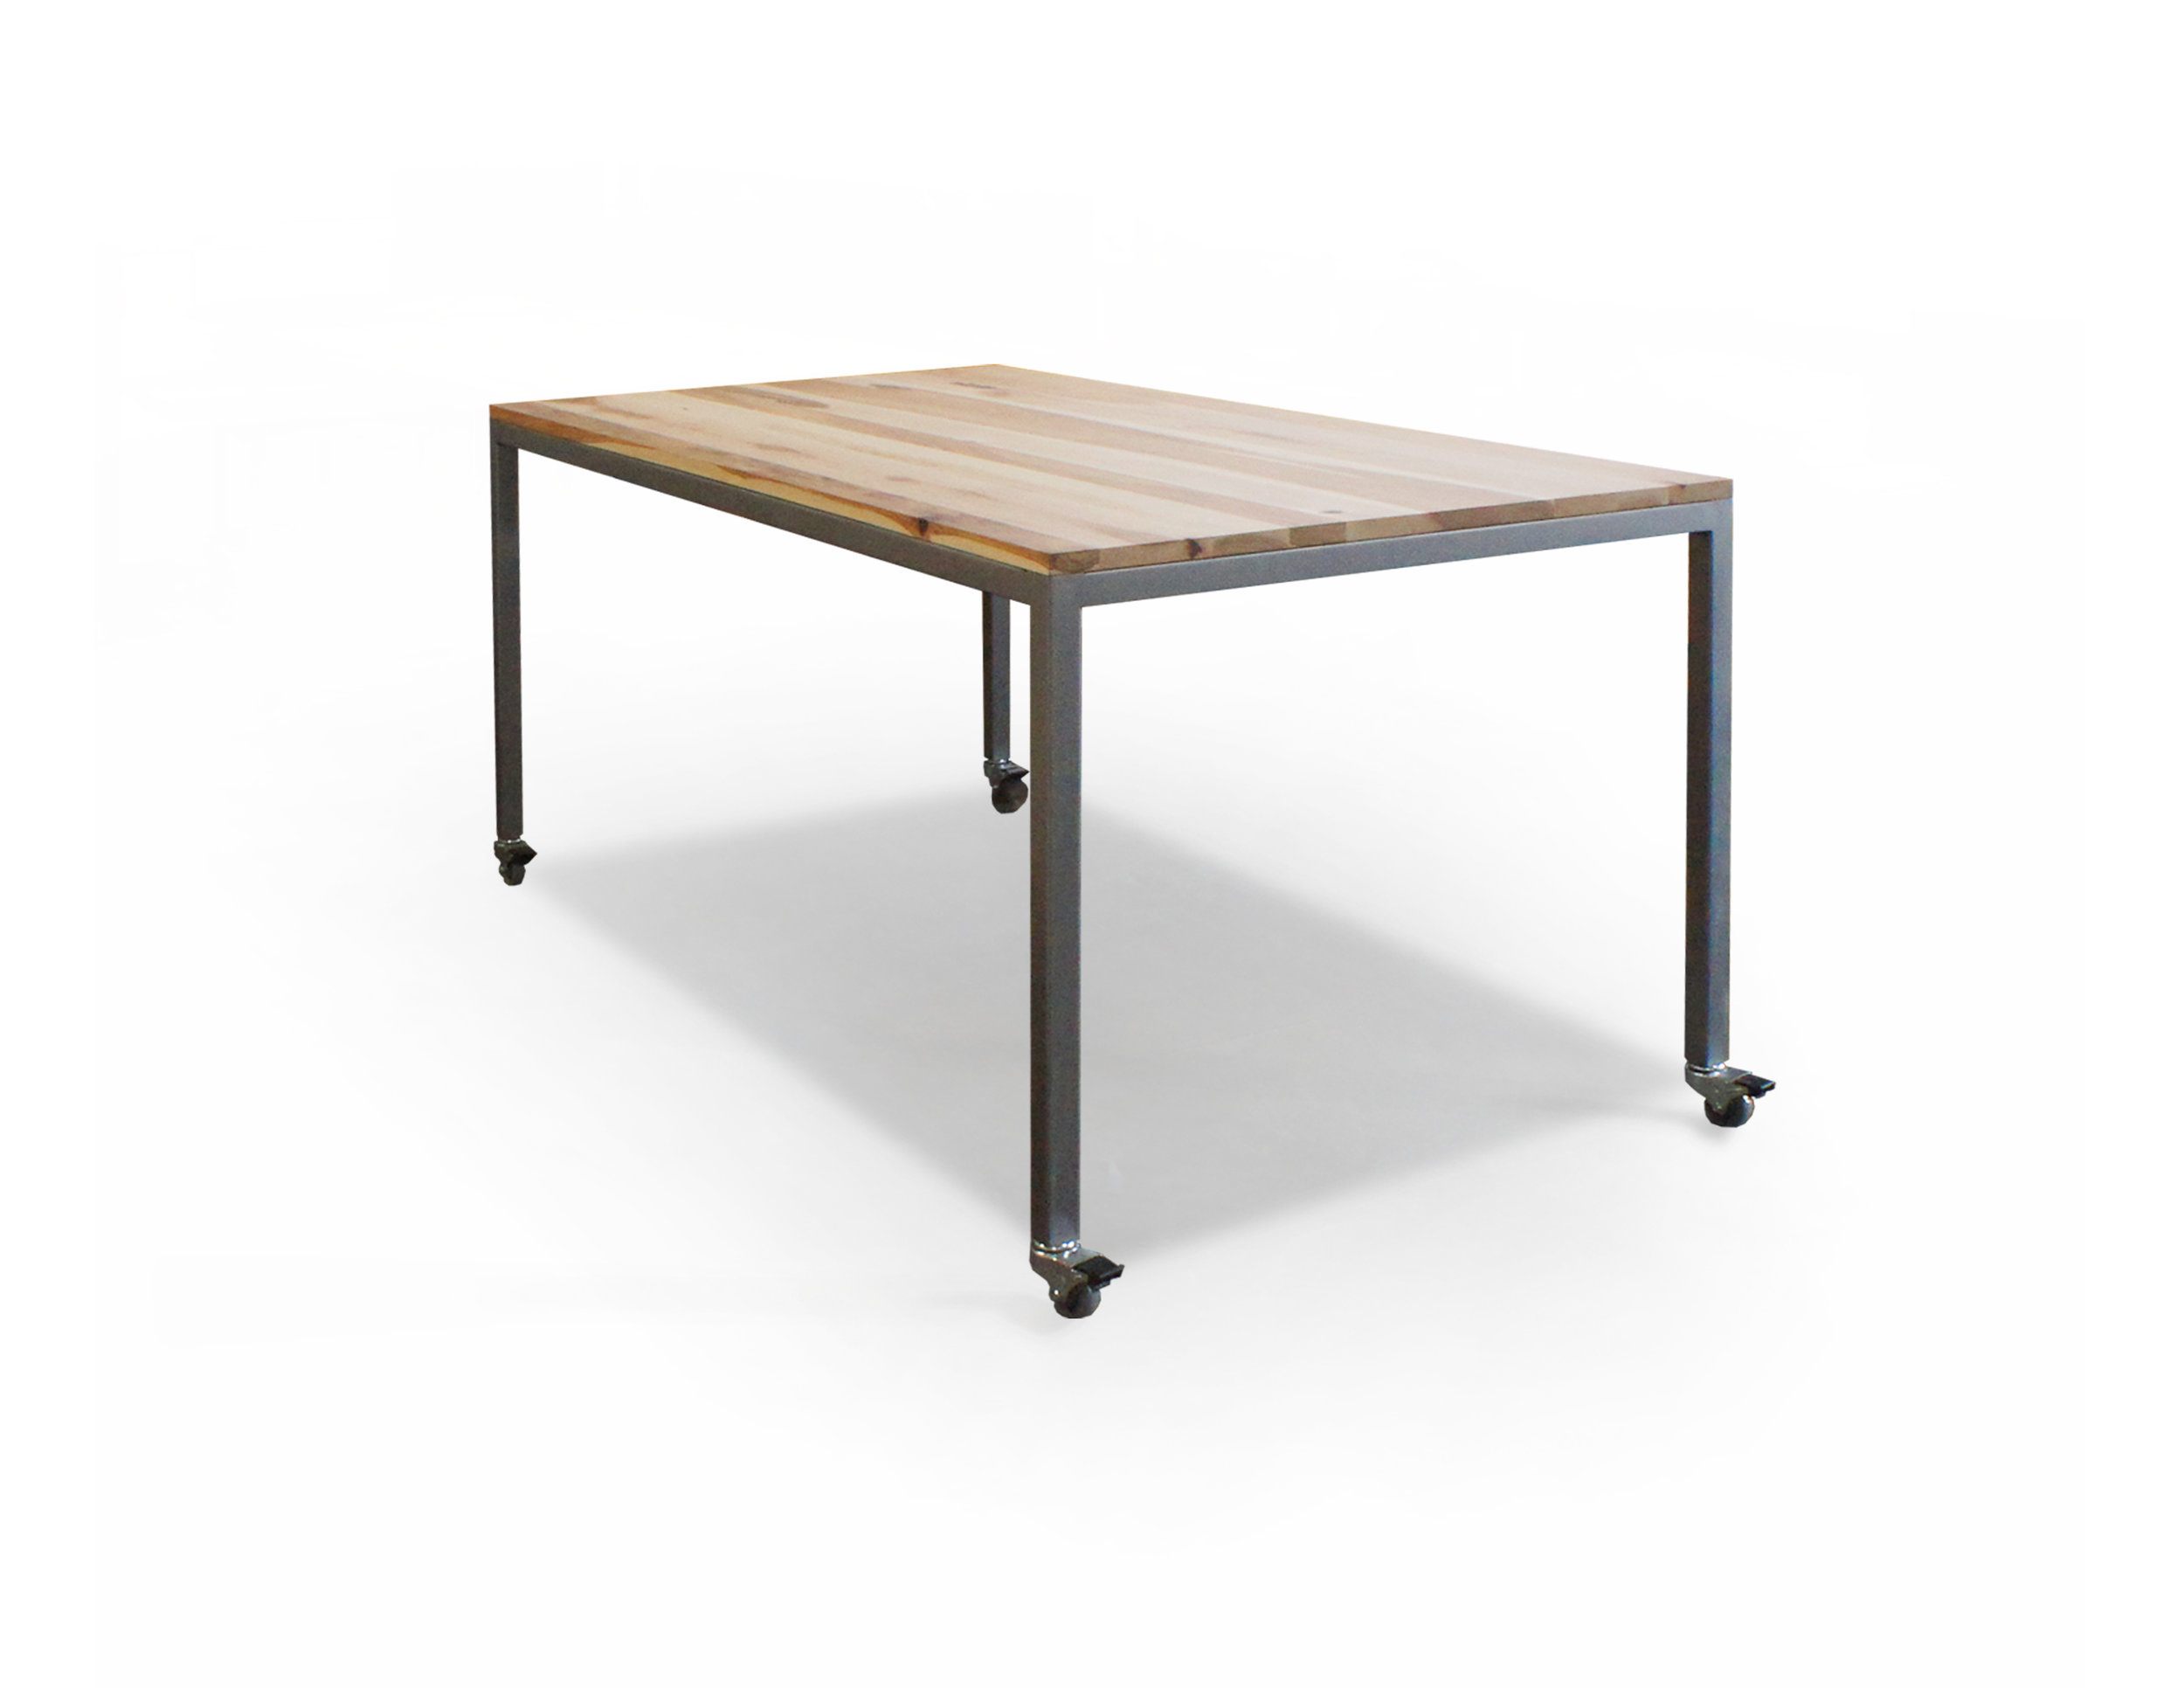 HICKORY TOP w/ BRUSHED STEEL FRAME